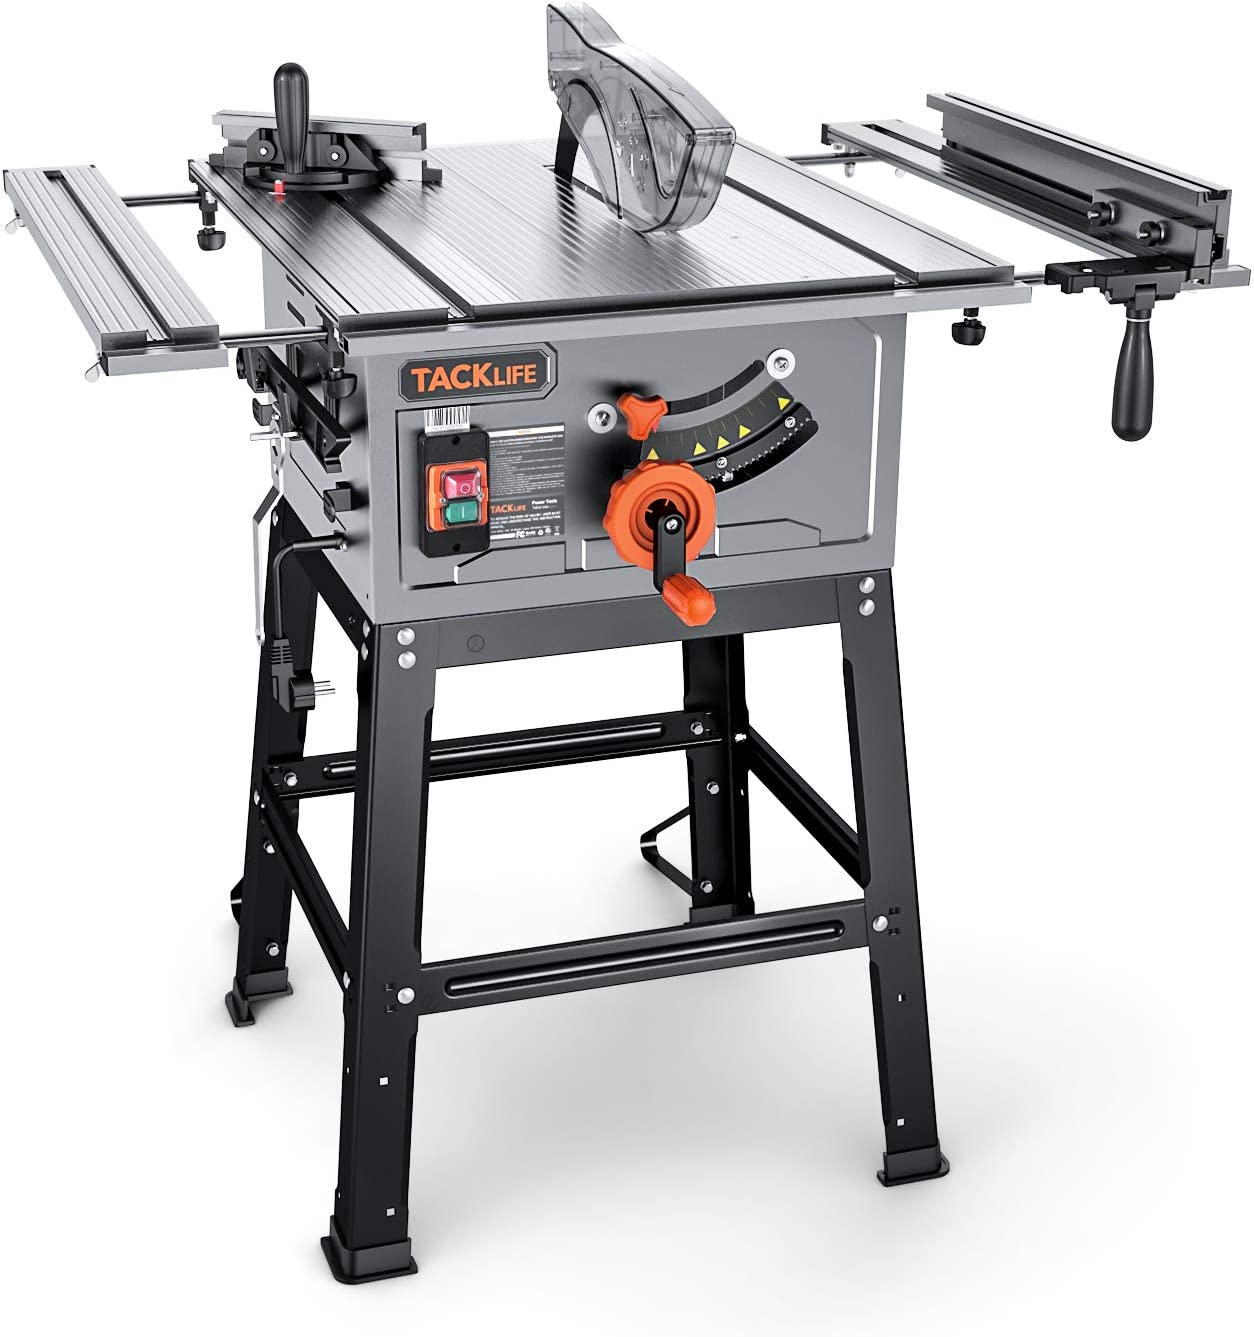 Extension Table, 45ºBevel Cutting, Jobsite Table Saw with Stand, Push Bar & Miter Gauge